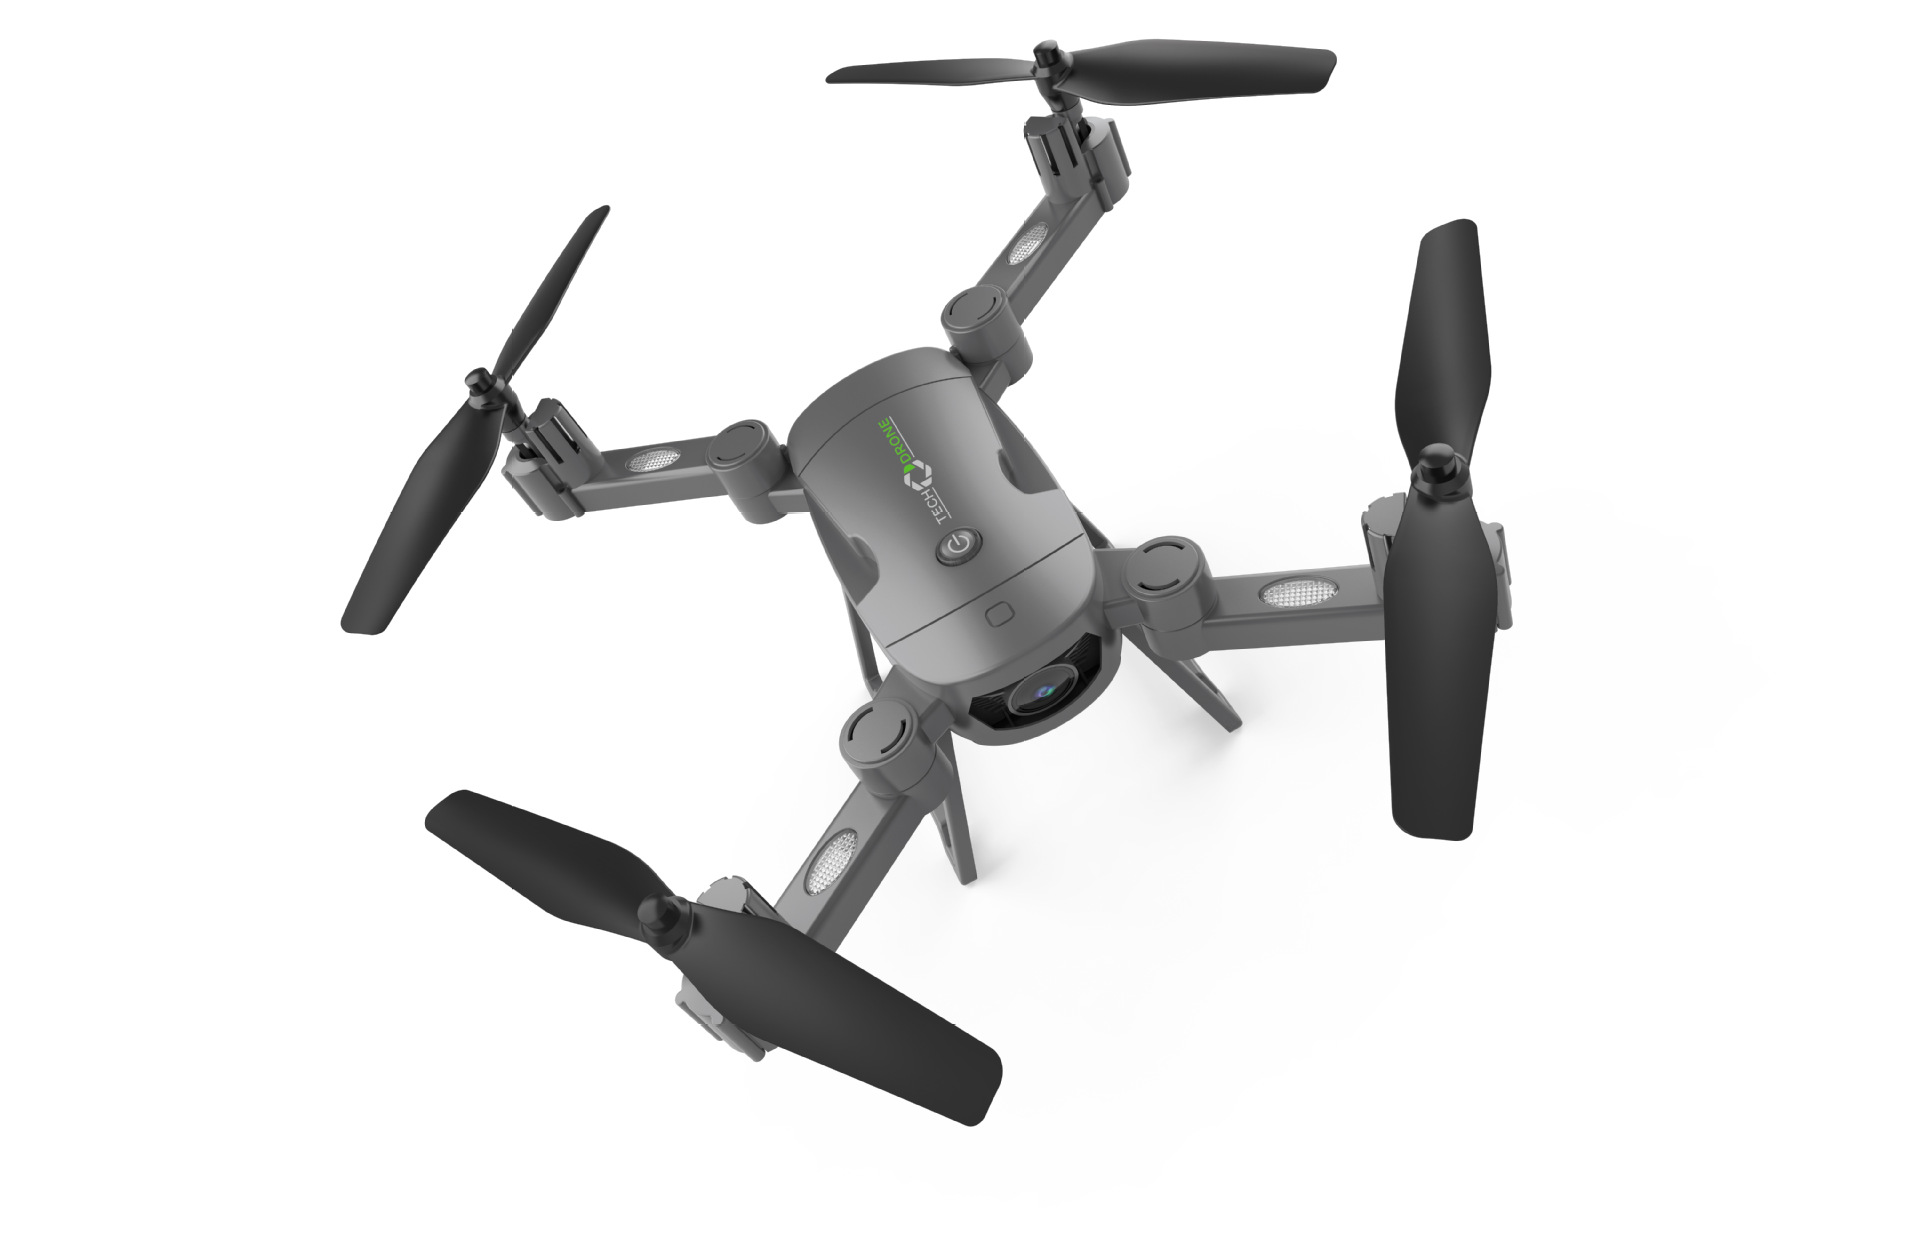 Lh-x24wf30 Folding Unmanned Aerial Vehicle Remote Control WiFi Control High-definition Camera Quadrocopter Toy